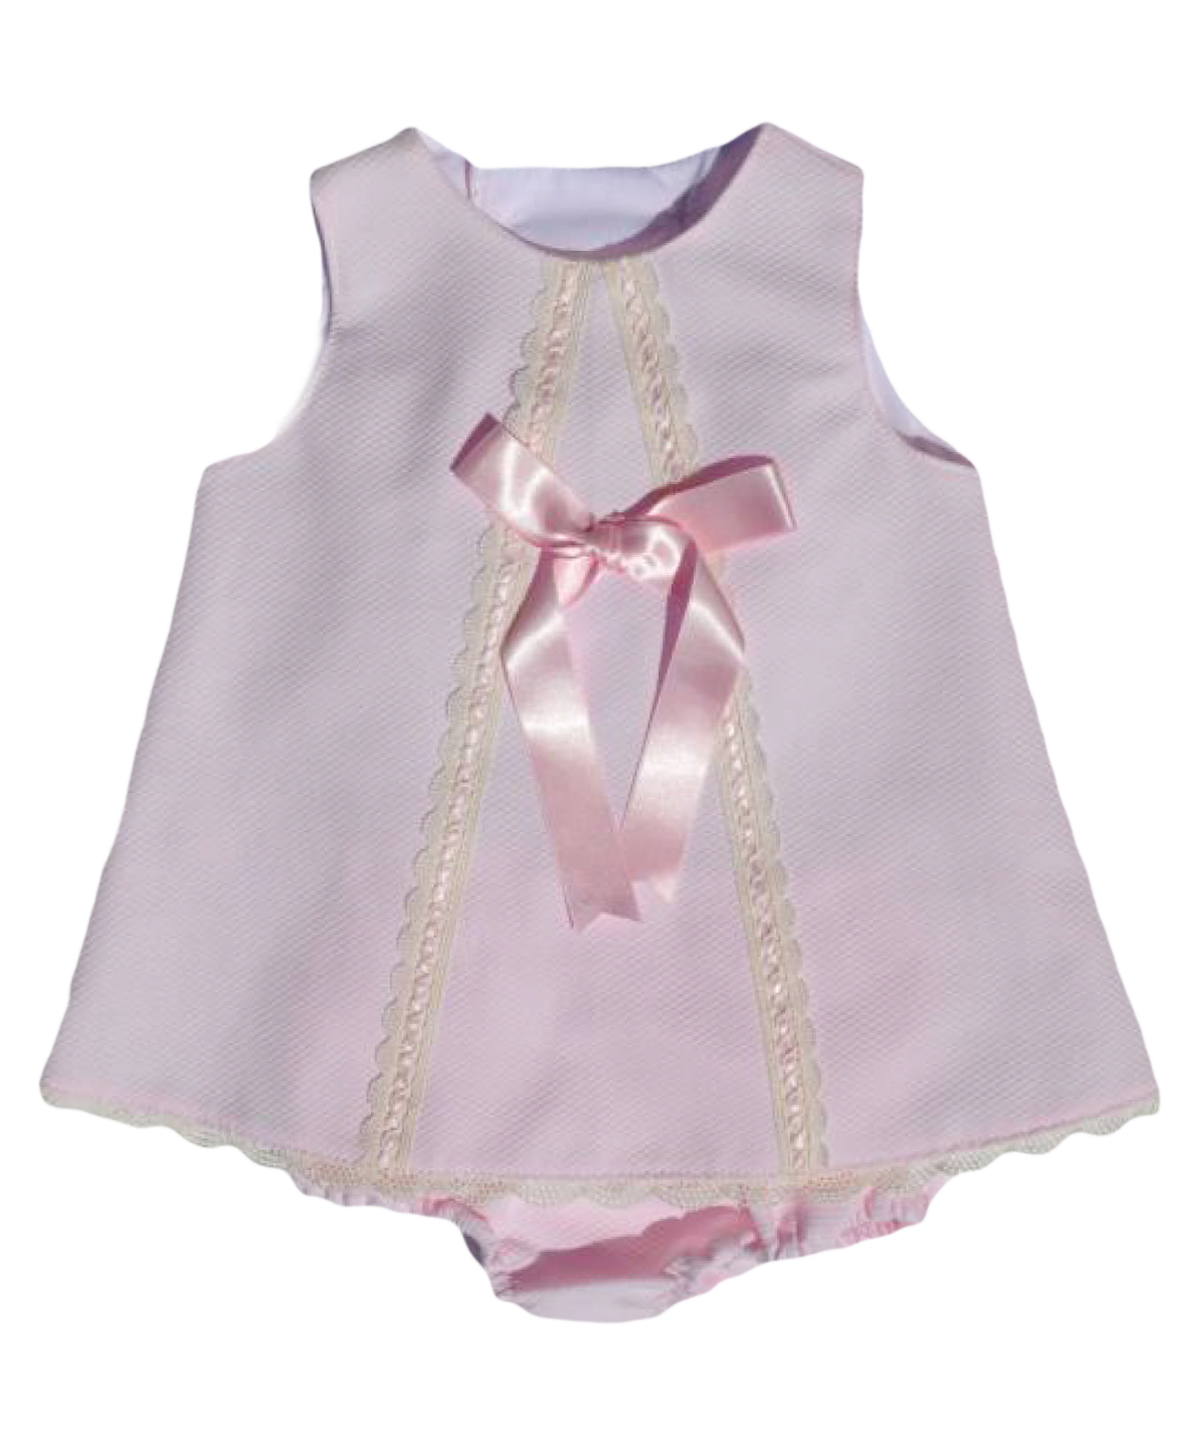 Online Baby Clothes London